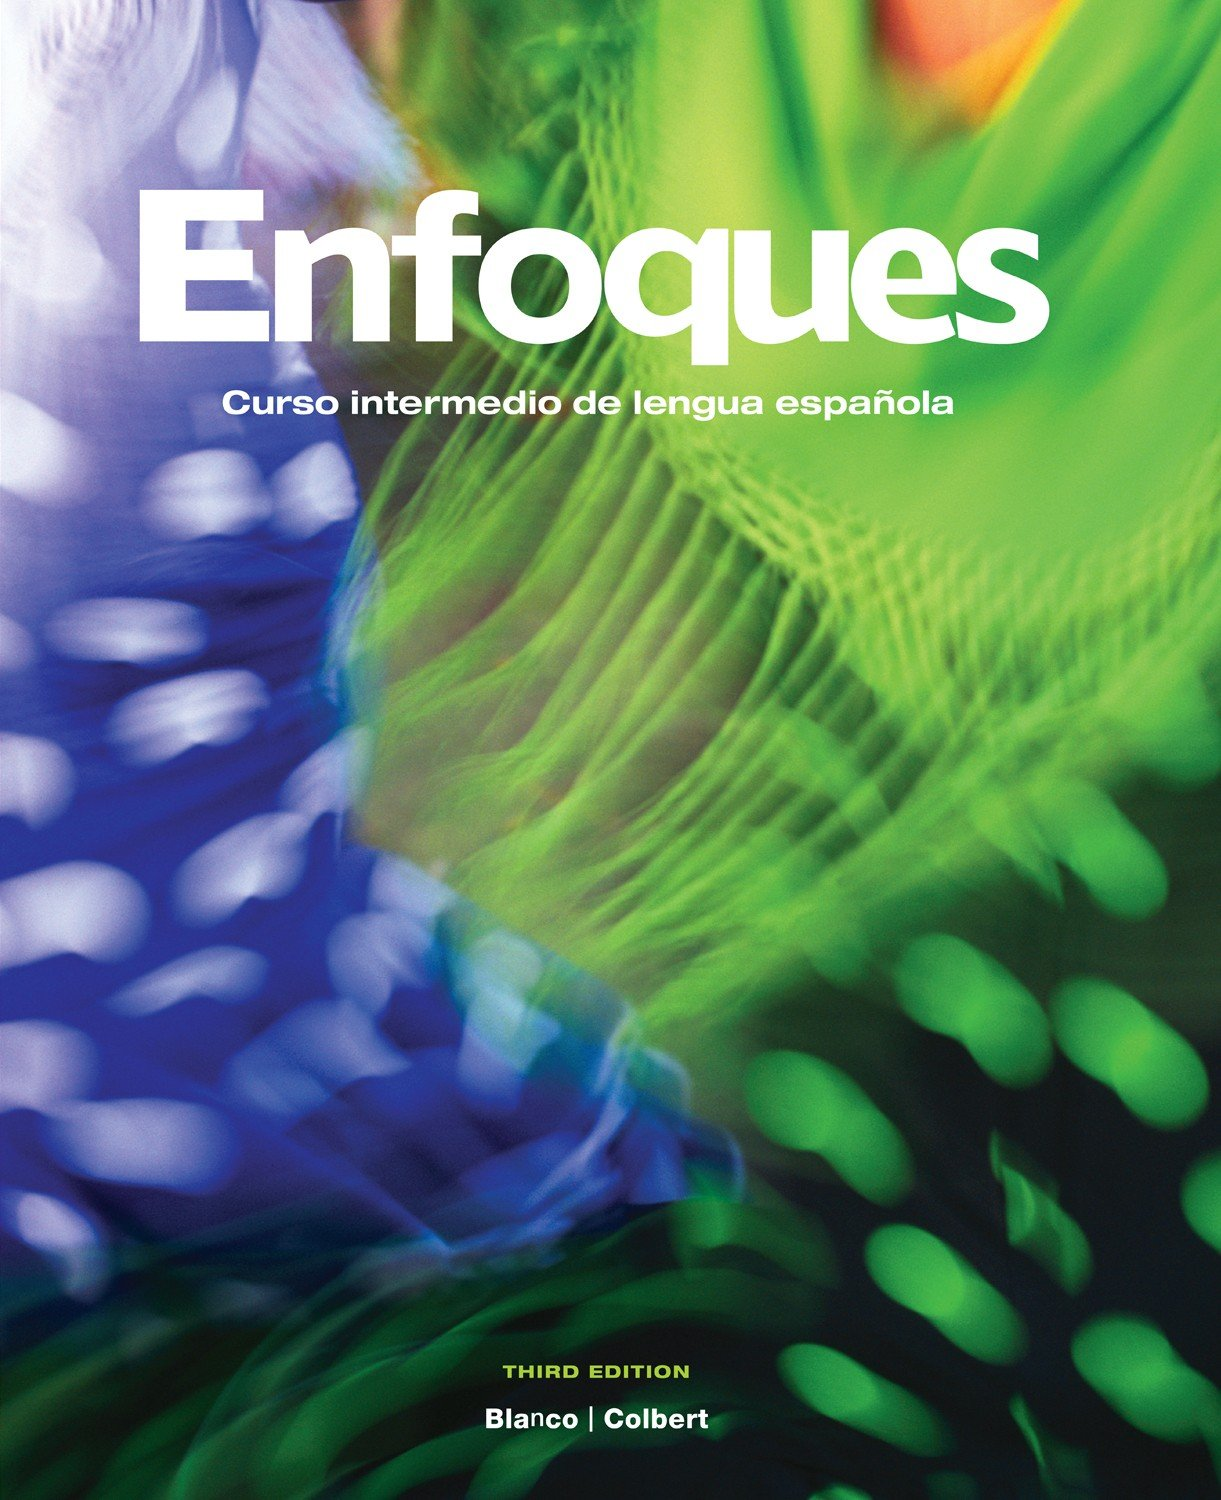 Enfoques 4th edition pdf dolapgnetband enfoques 4th edition pdf fandeluxe Image collections